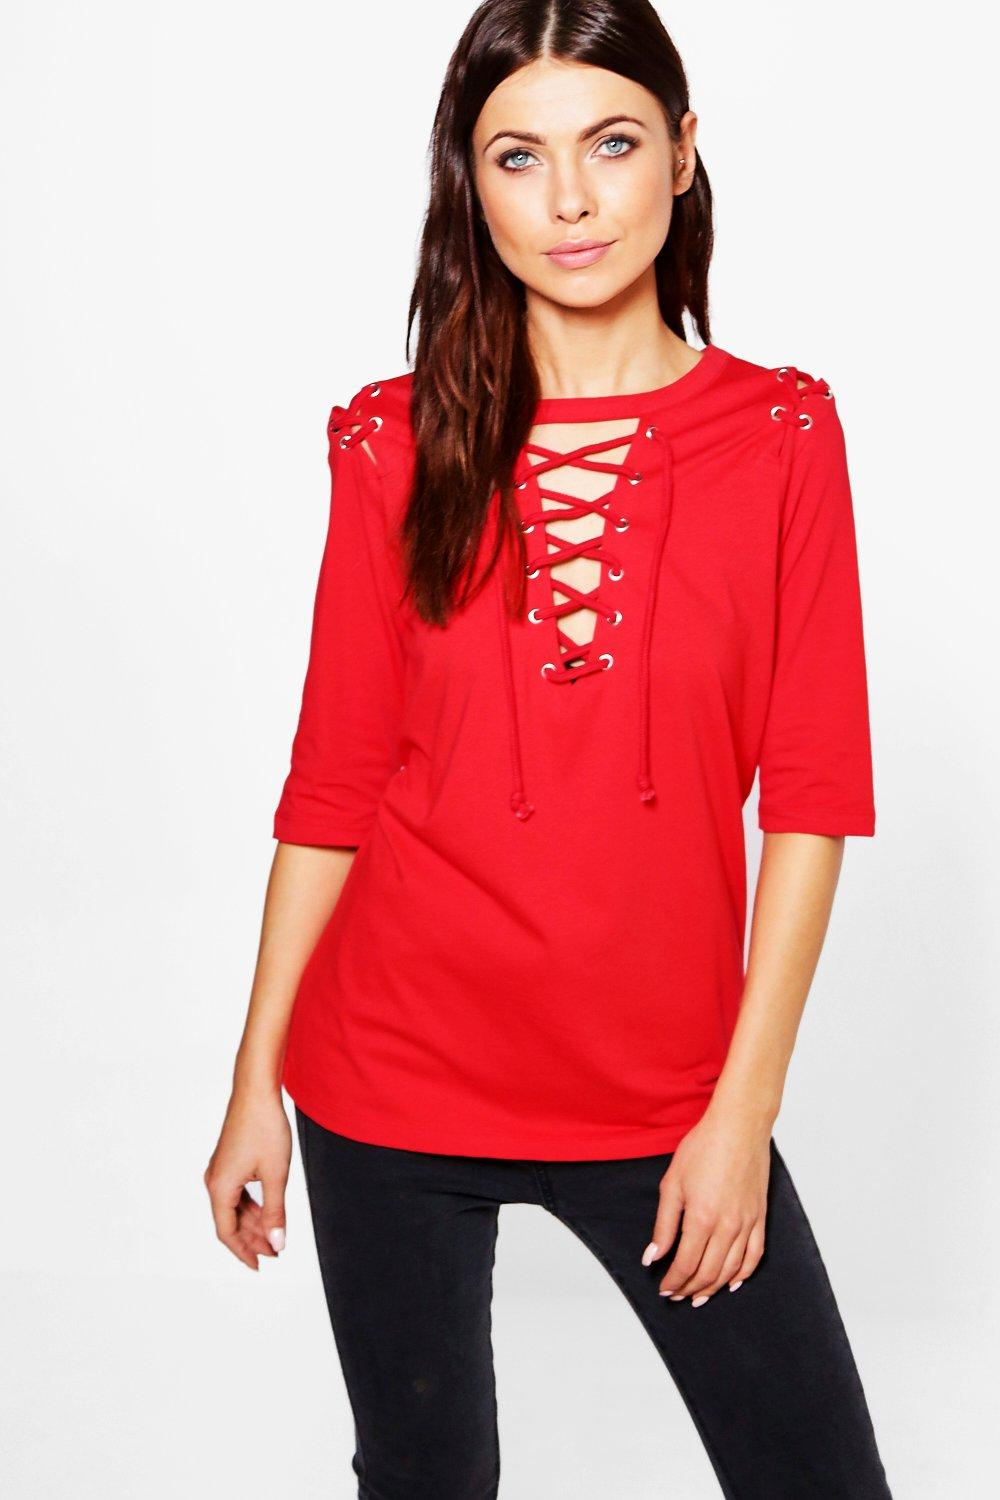 1/2 Lace Up Front And Shoulder Tee - red